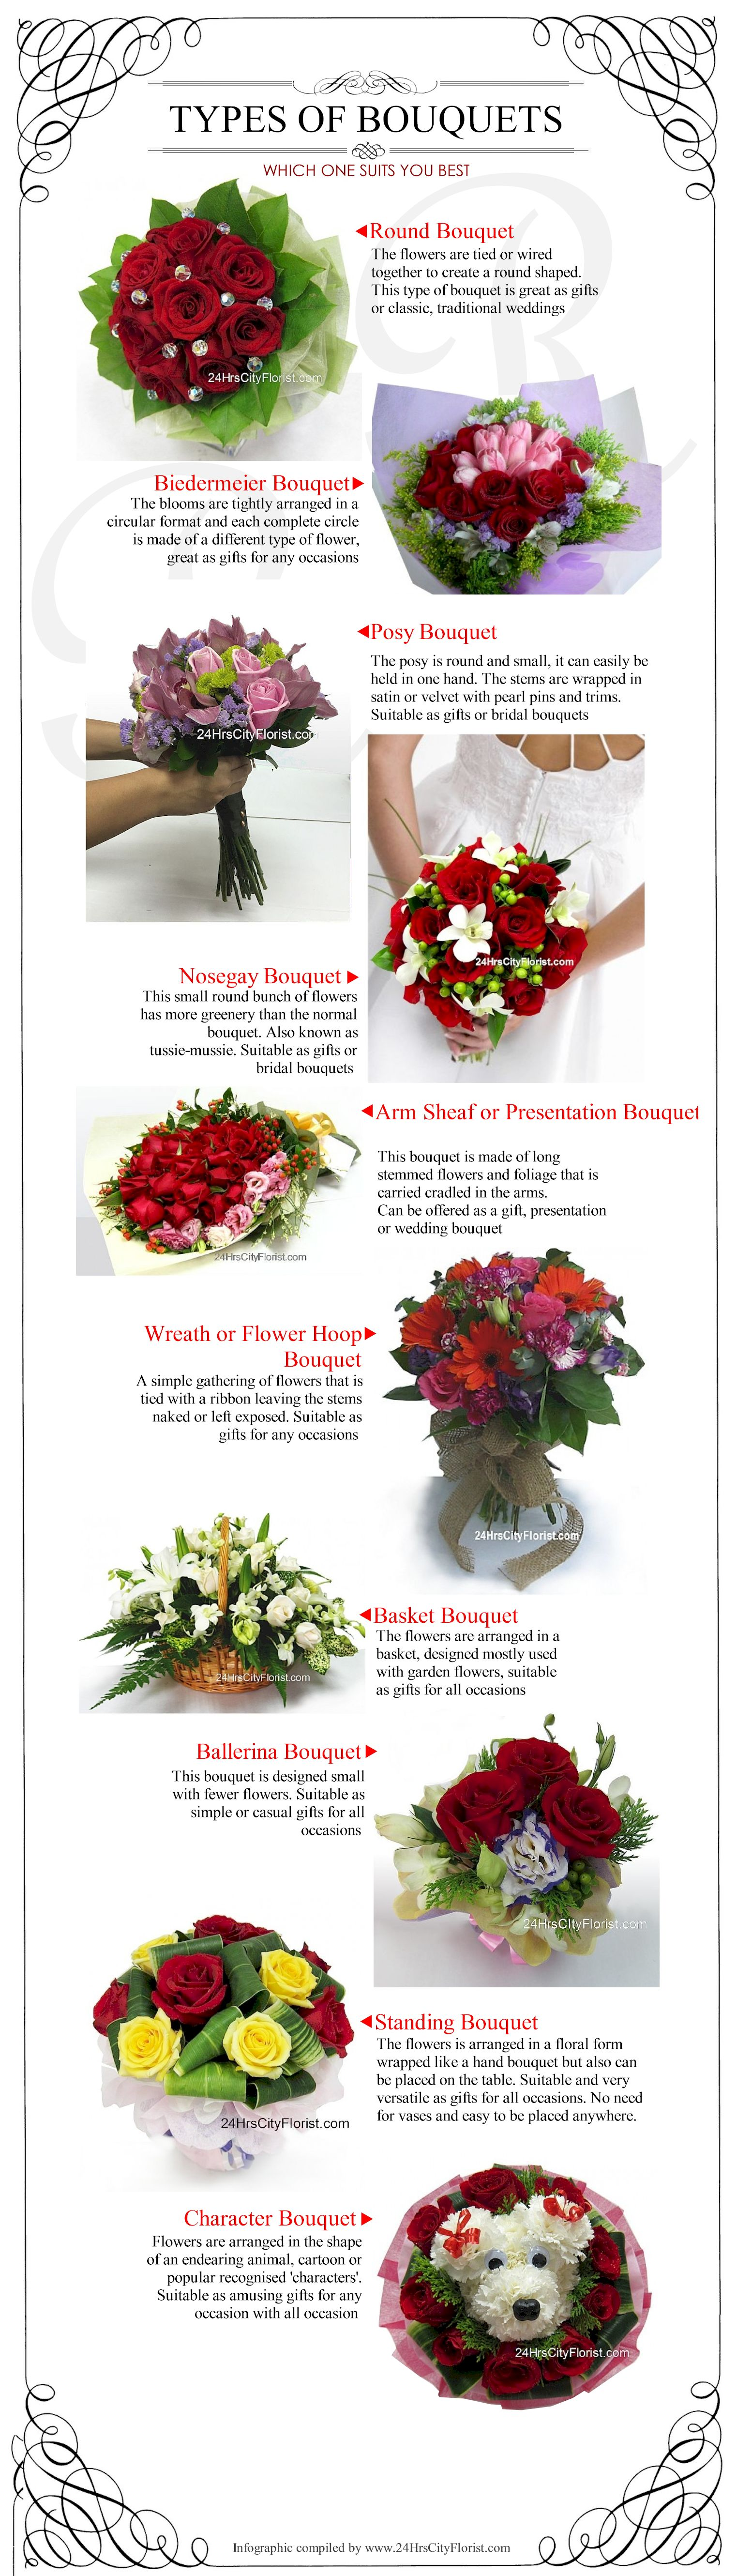 Type of Bouquets